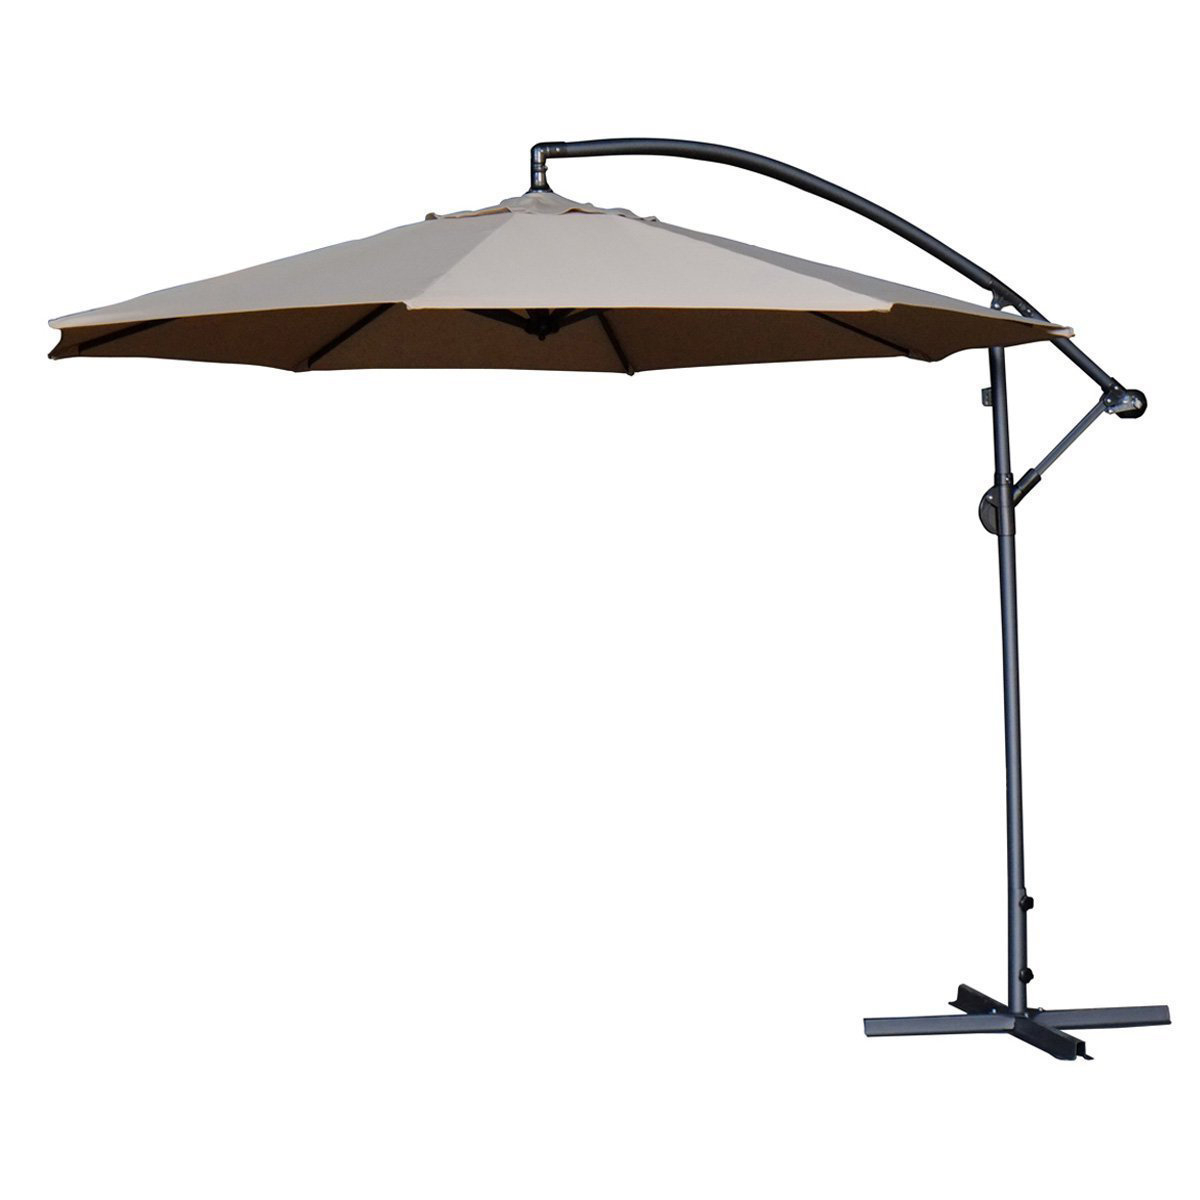 Irven 10' Cantilever Umbrella Within Recent Jaelynn Cantilever Umbrellas (View 7 of 20)